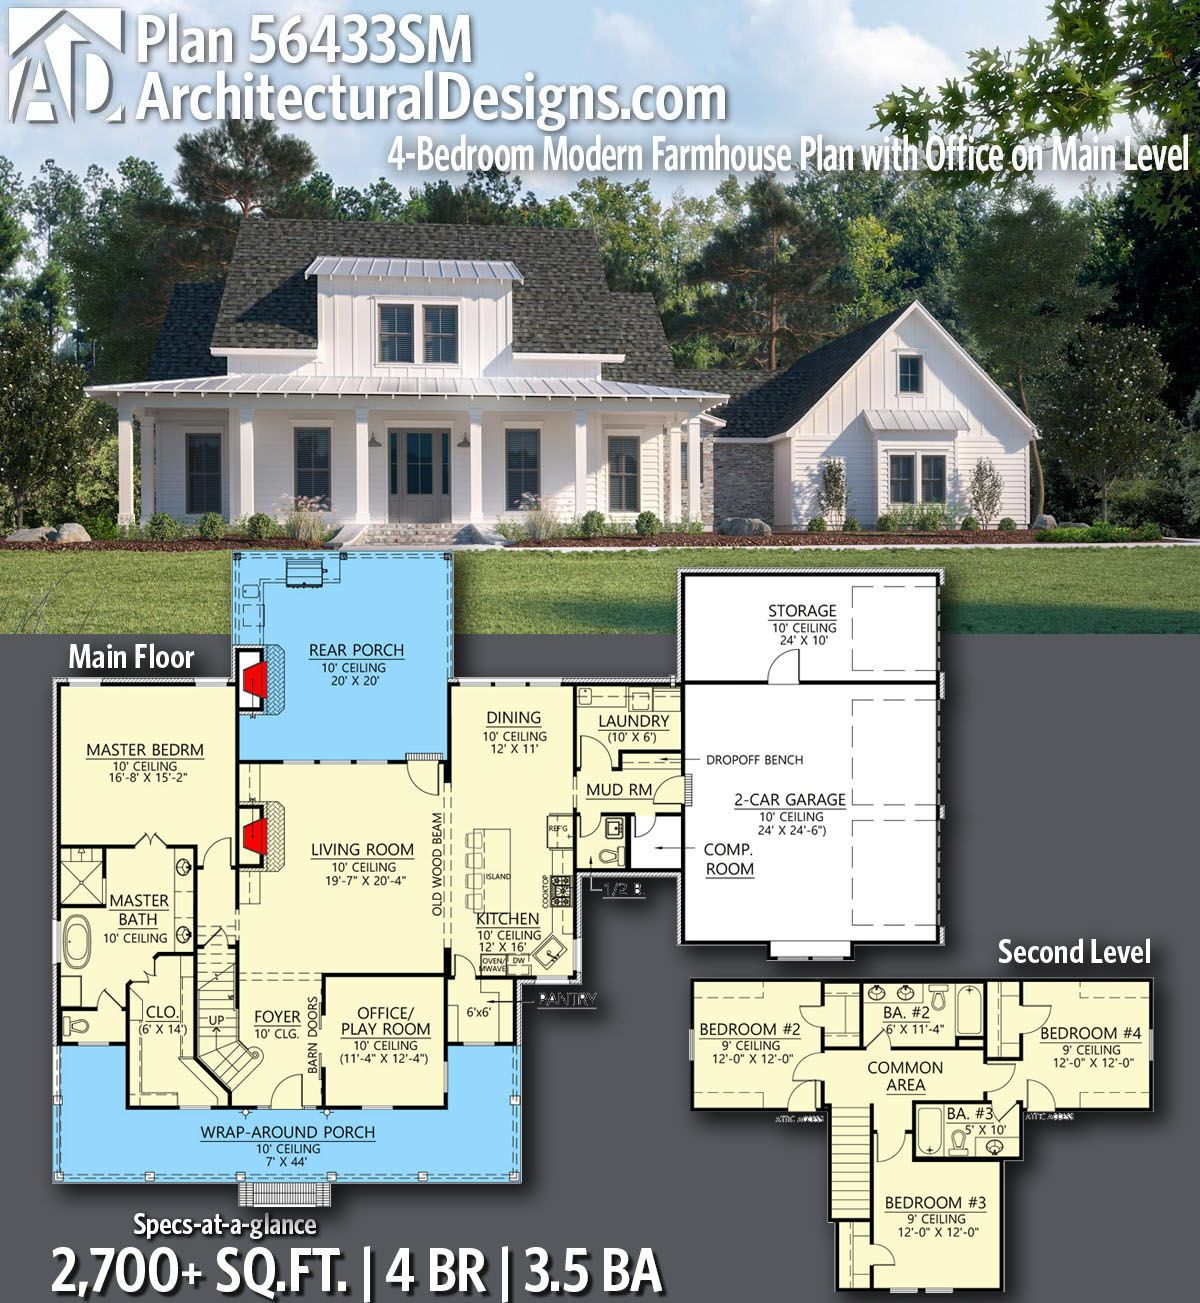 Plan 56433sm 4 Bedroom Modern Farmhouse Plan With Office